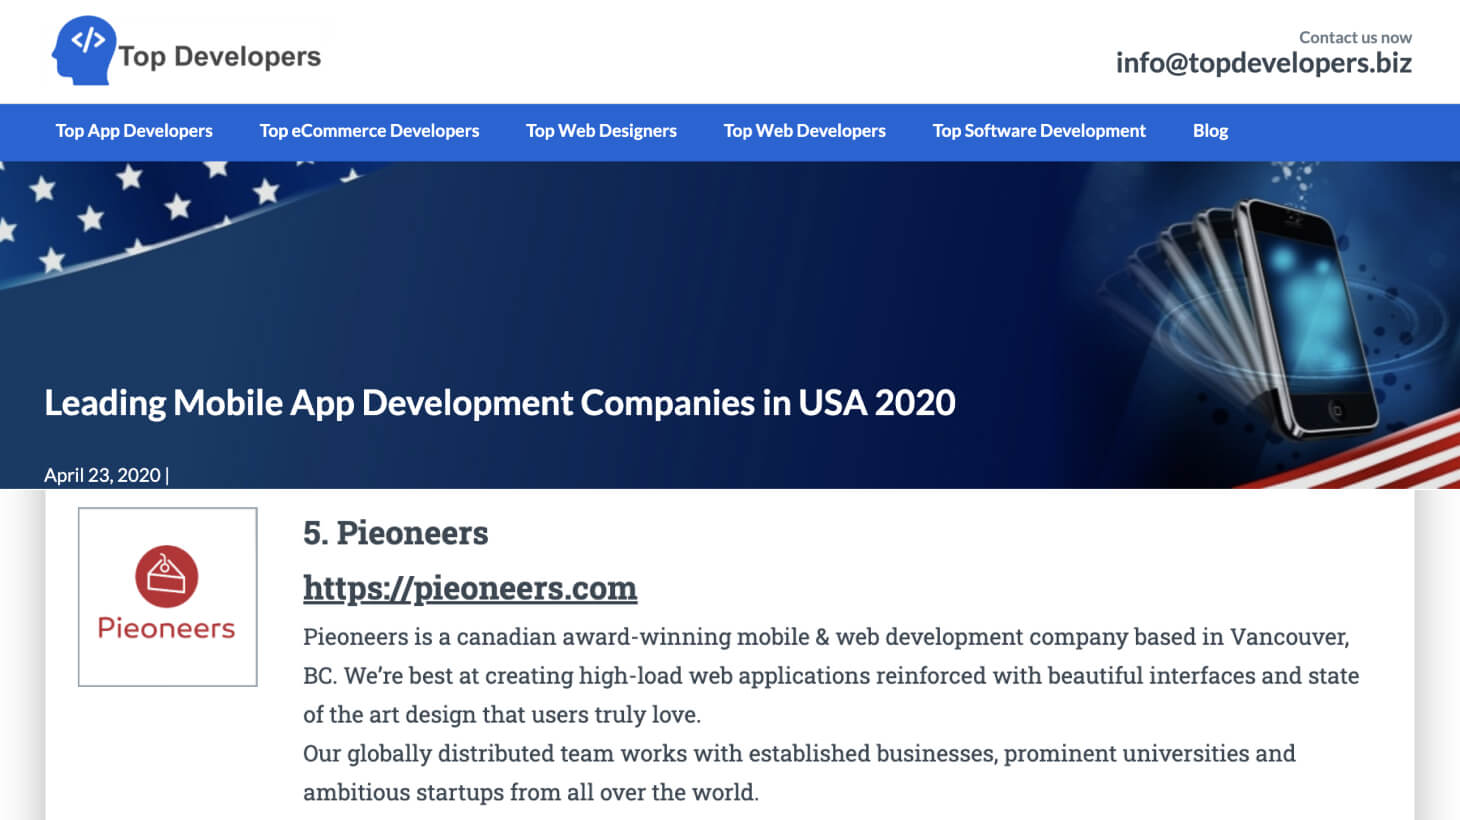 Ranked #5 by Leading mobile App Development Company in the USA for 2020